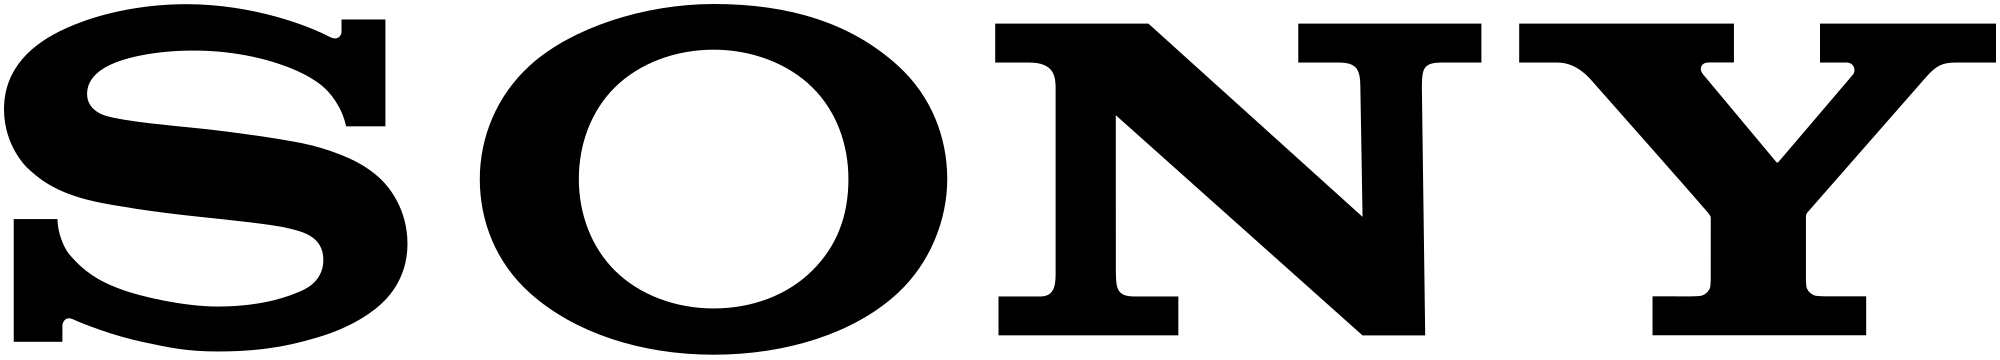 Sony logo png. Images free download